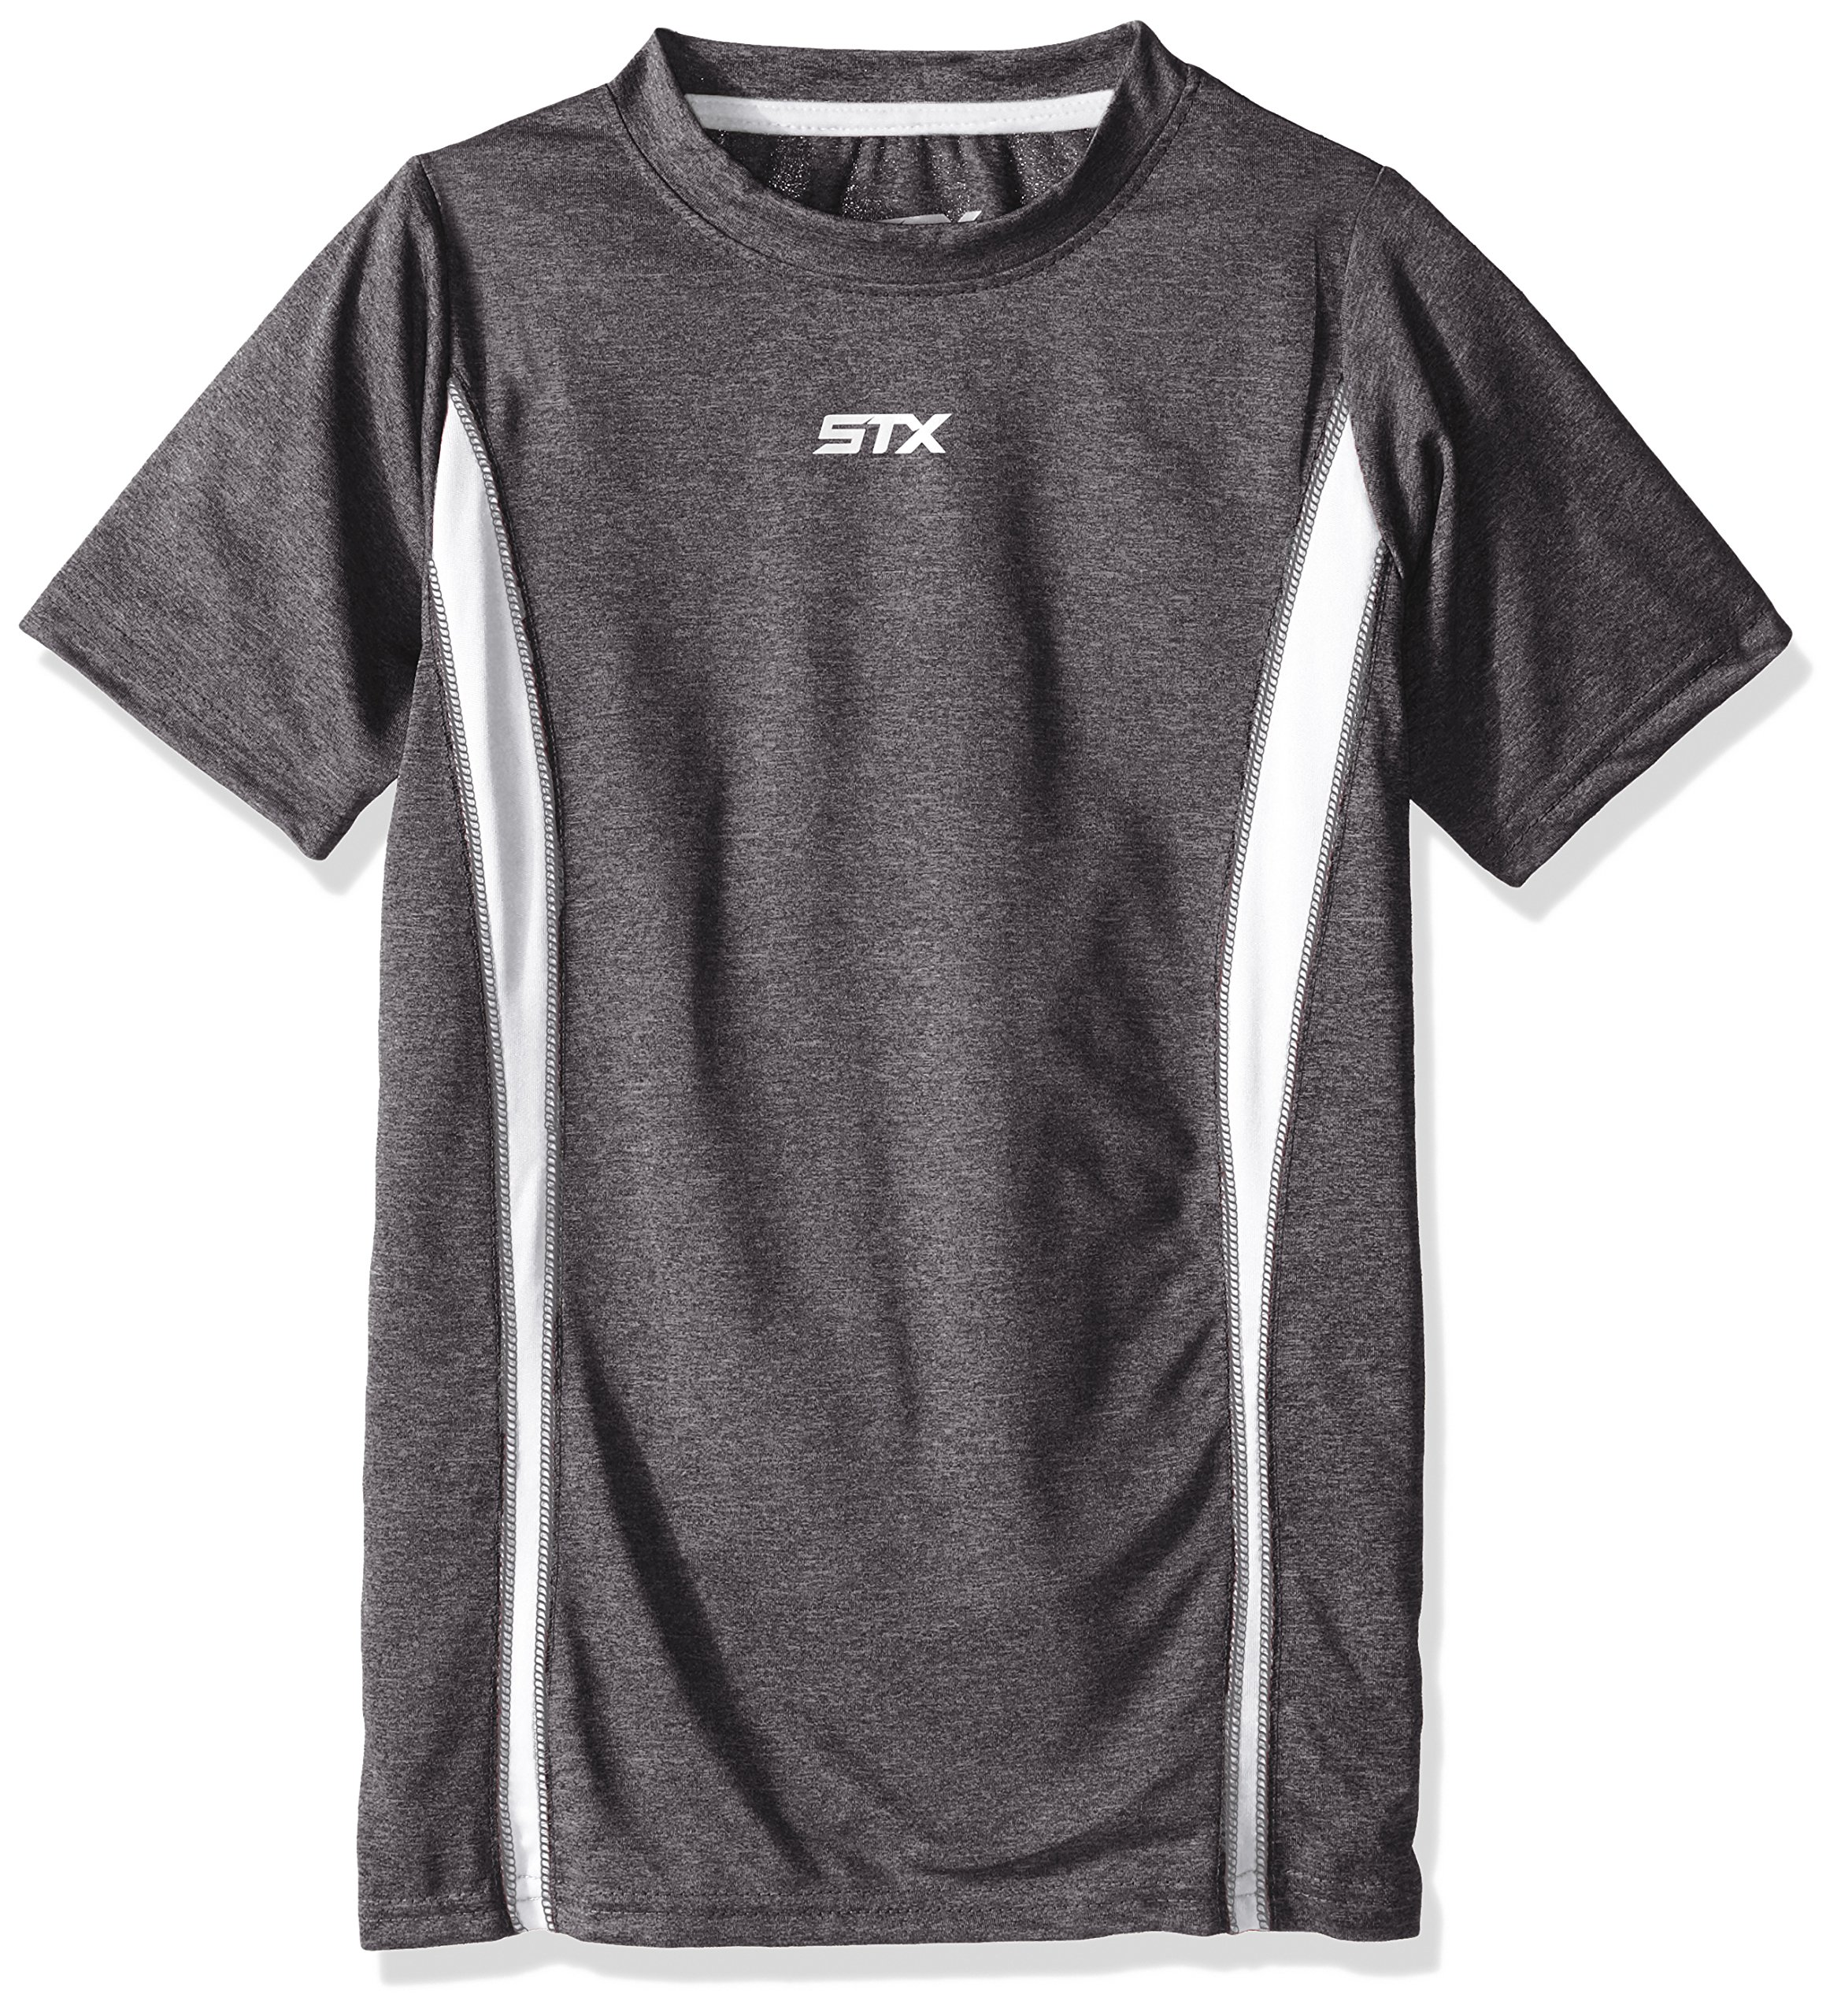 STX Little Boys Active T-Shirt and Packs, White-TP55, 4